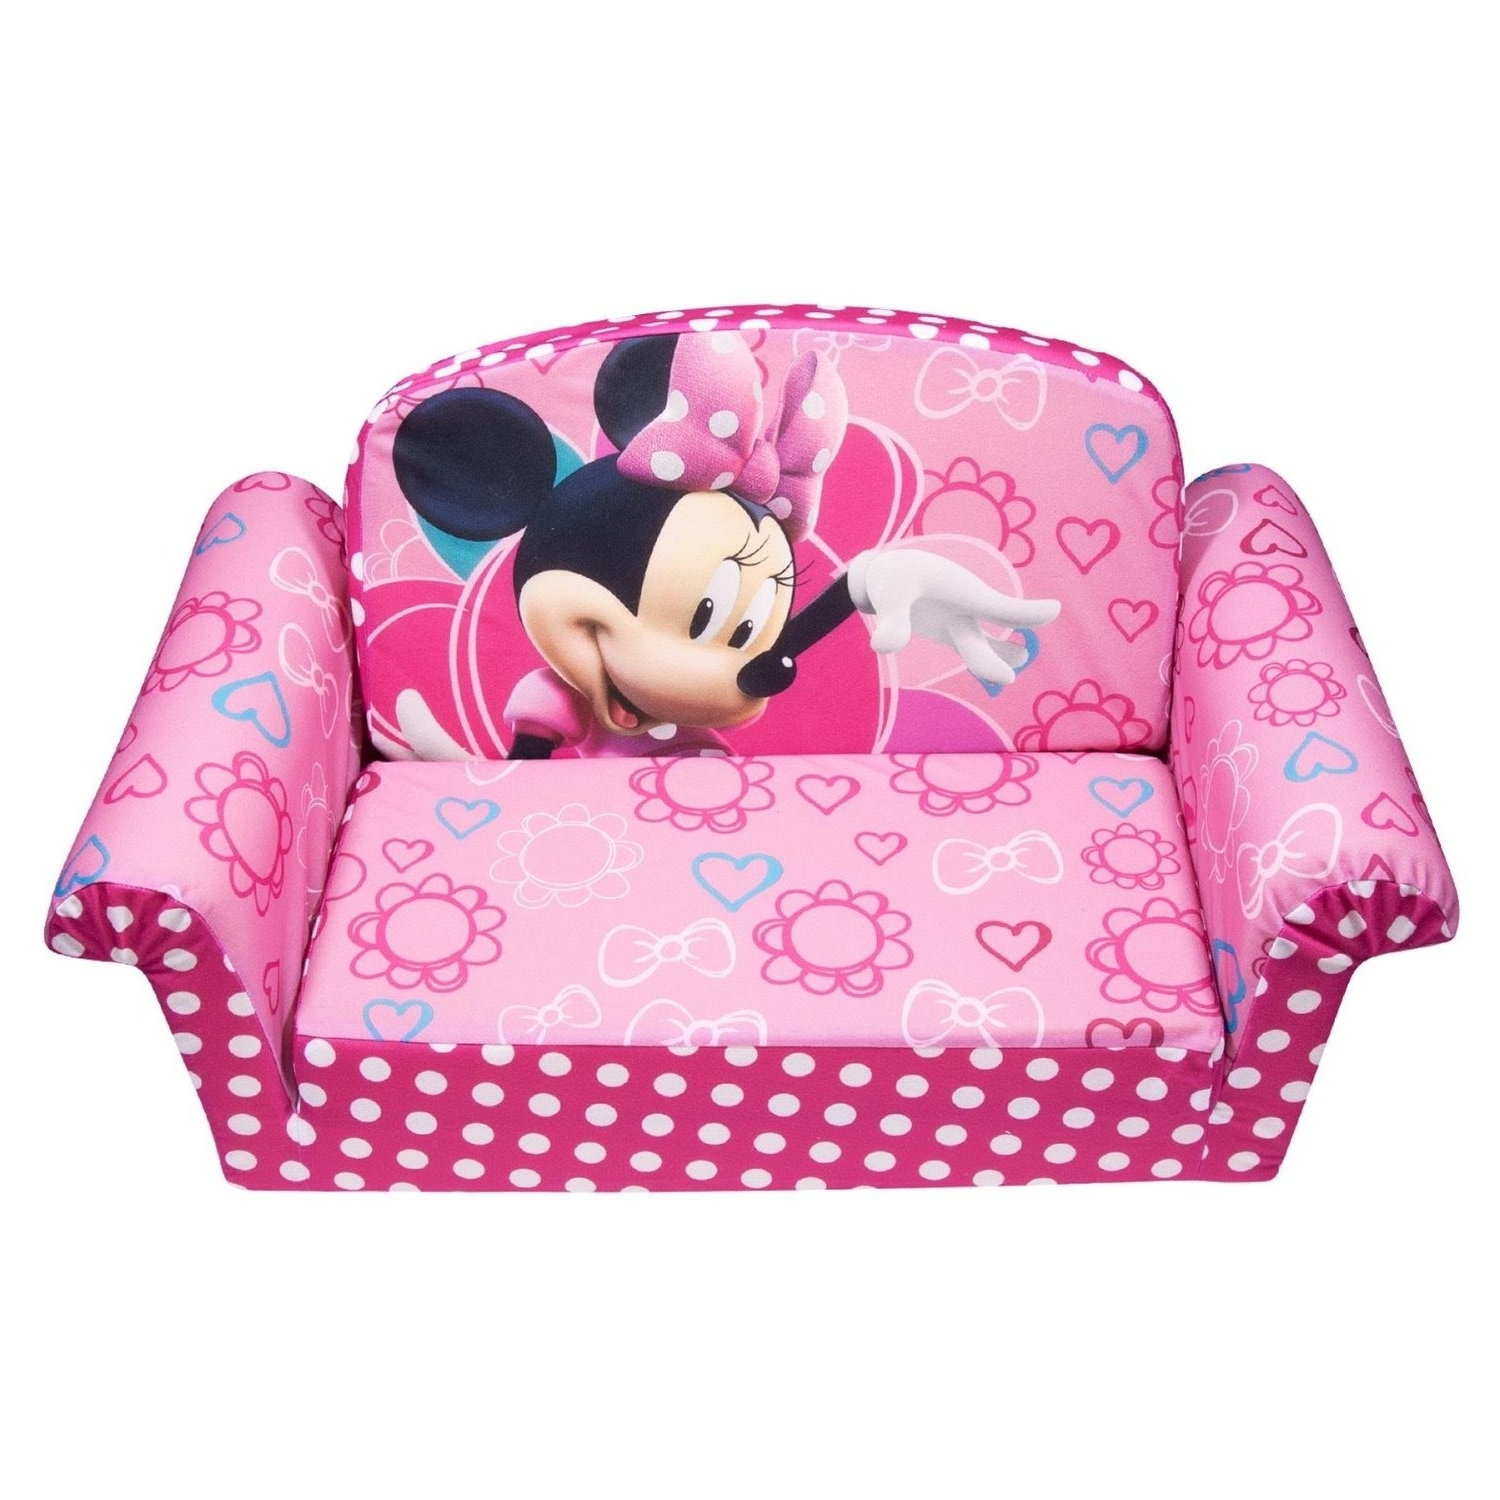 Famous Disney Sofa Chairs Inside Review: Marshmallow Children's Furniture – 2 In 1 Flip Open Sofa (View 5 of 15)